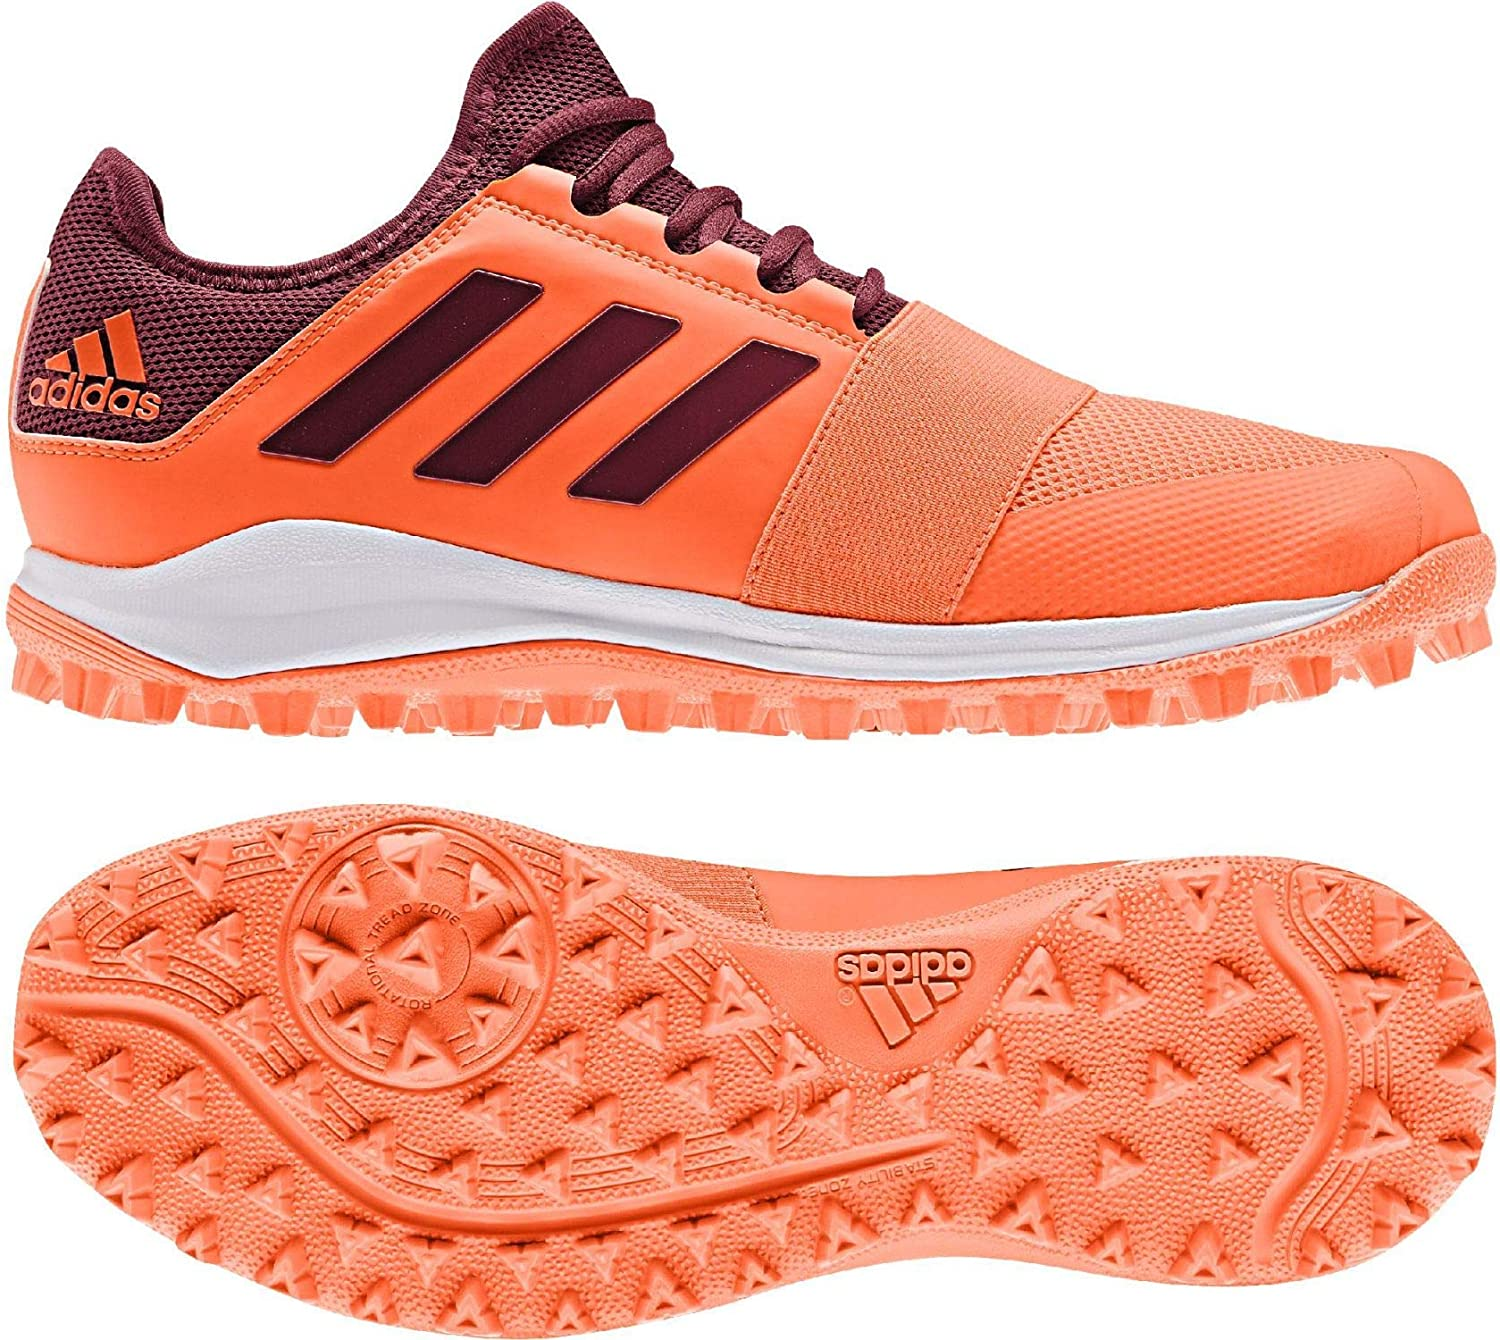 adidas women's field hockey turf shoes Clearance Sale   Find the ...